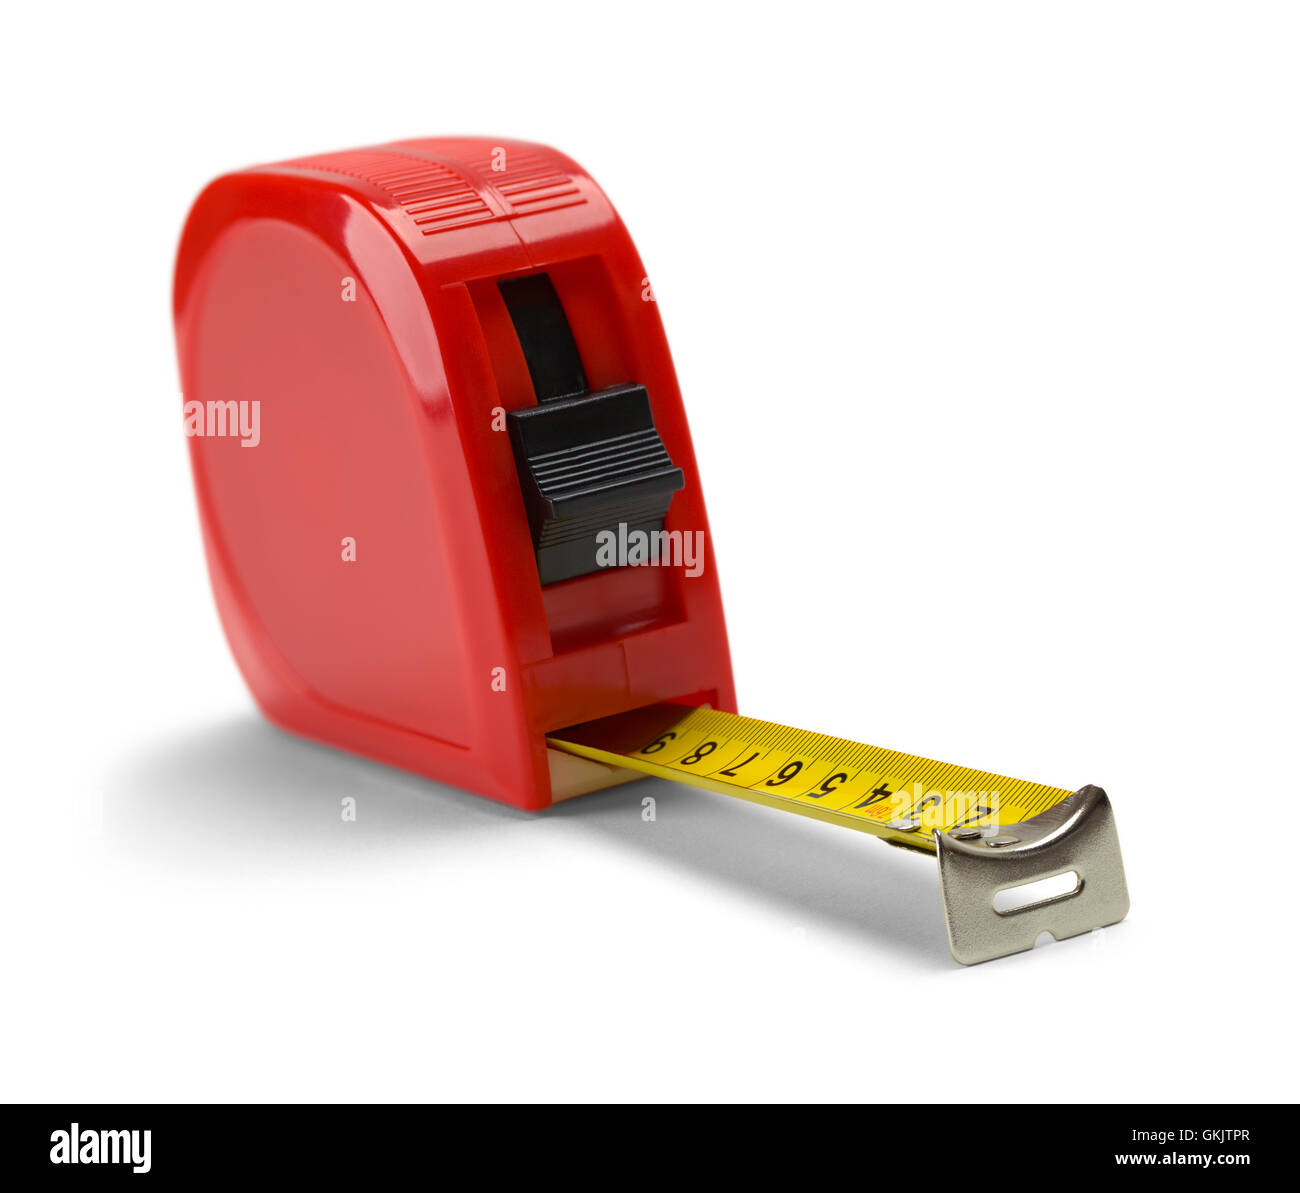 Red Tape Measure Isolated on White Background. - Stock Image